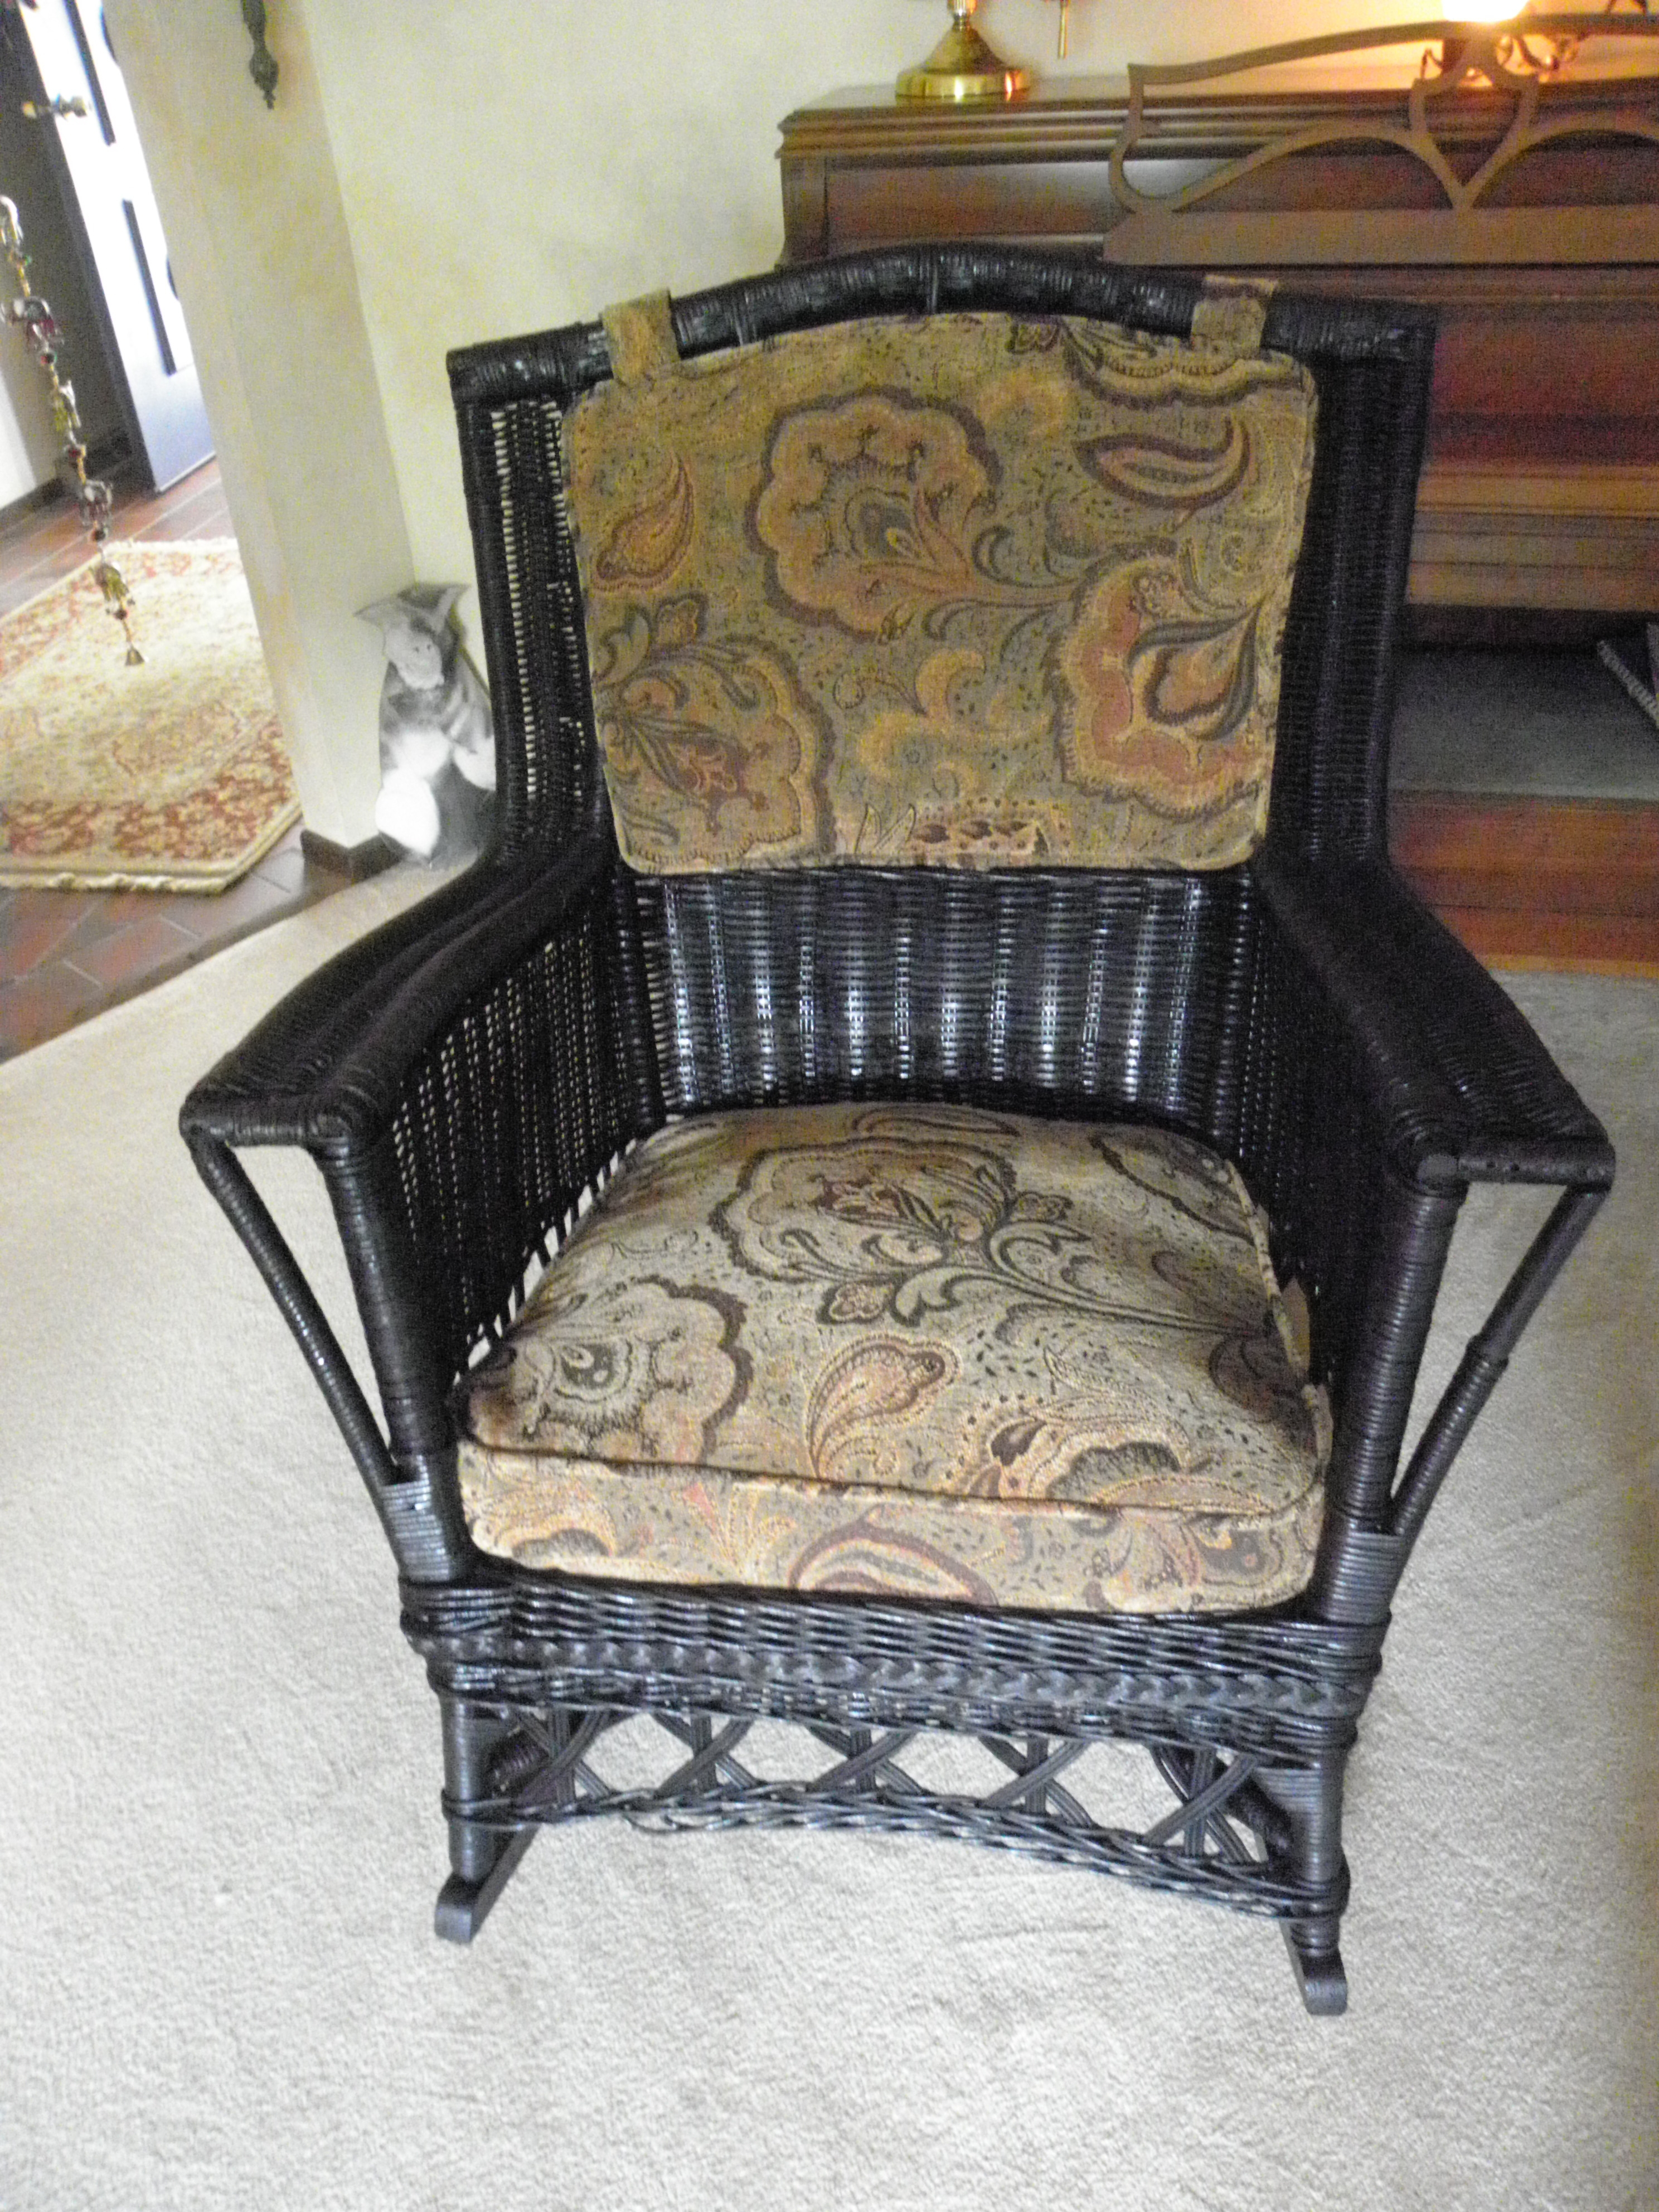 Luxury Vintage Wicker Rocking Chair In Home Remodel Ideas With Throughout Preferred Rocking Chairs With Springs (View 8 of 20)